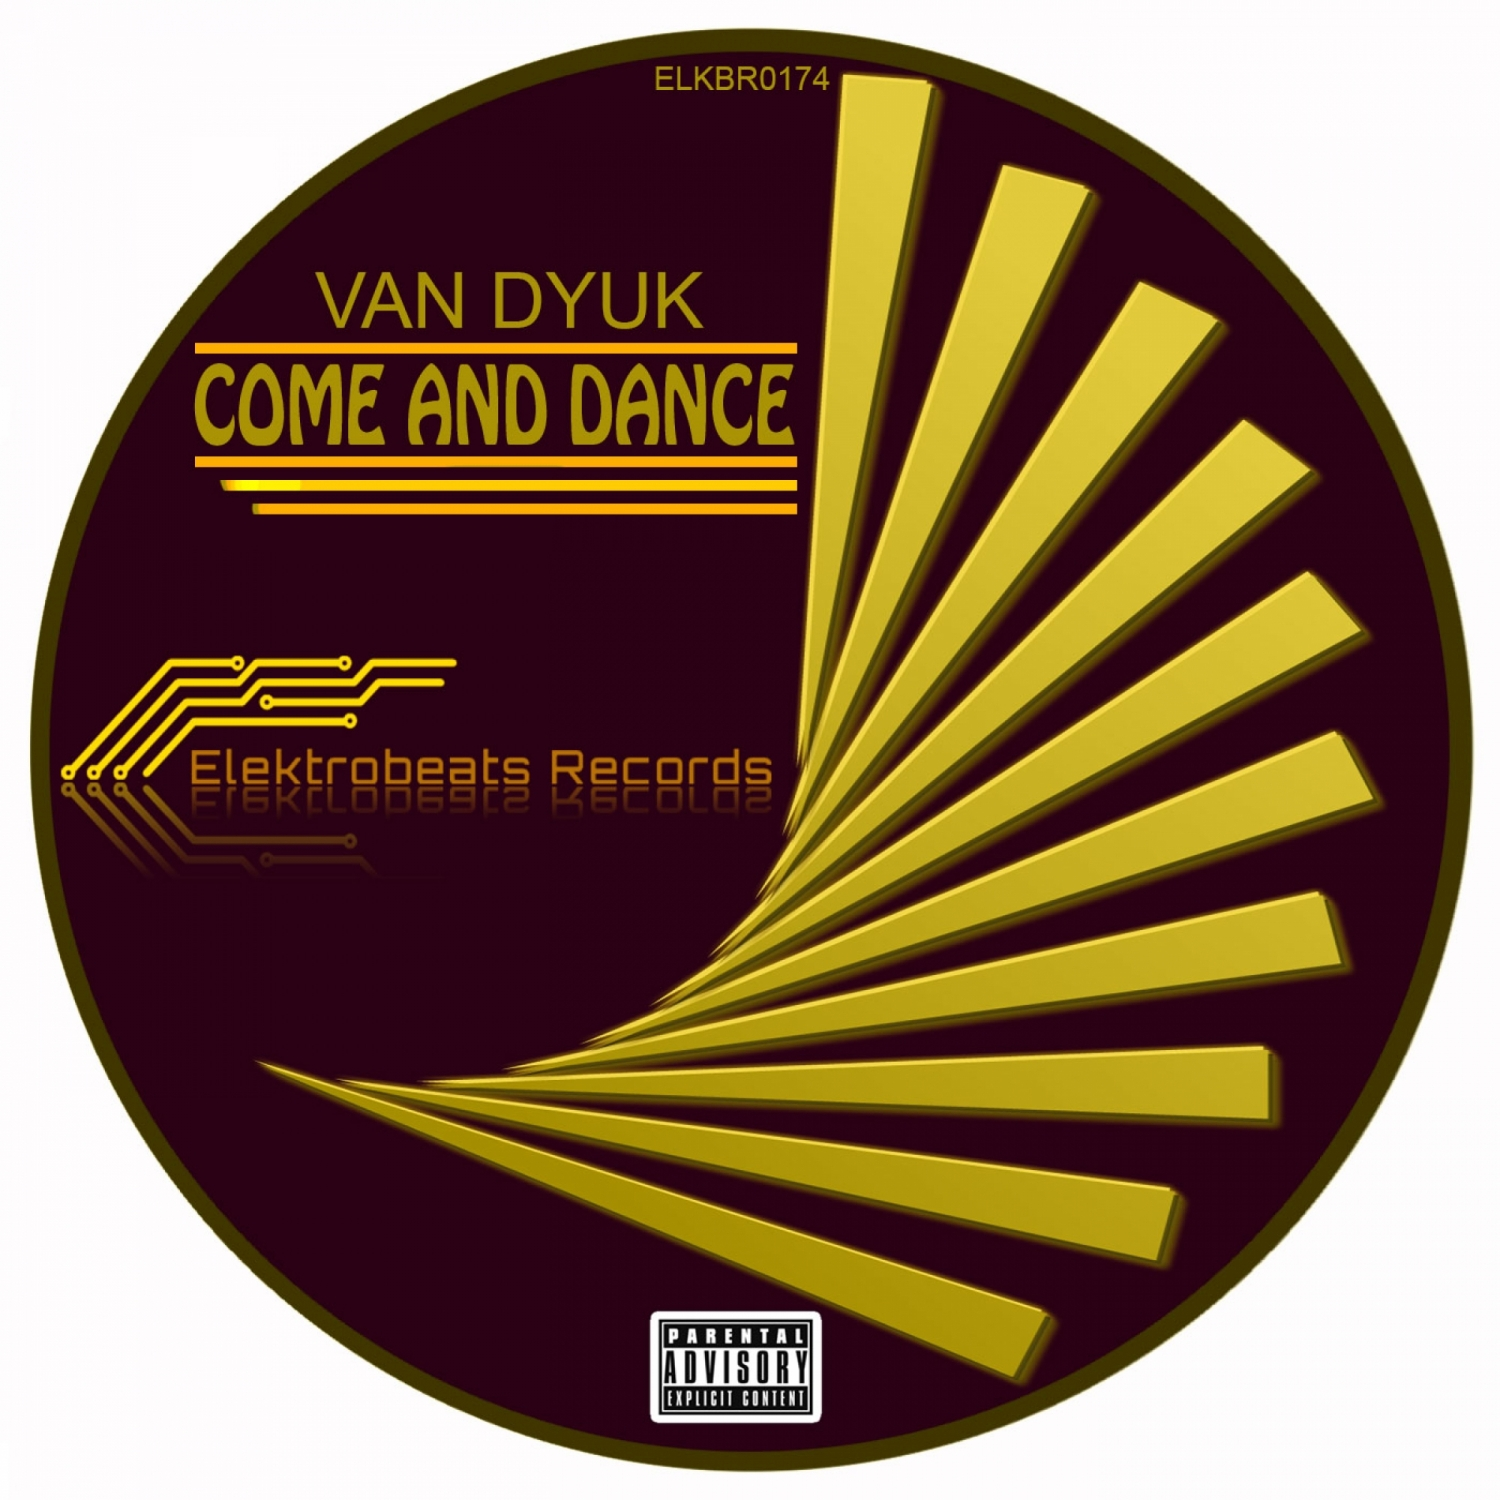 Van Dyuk - Come and Dance (Original Mix)